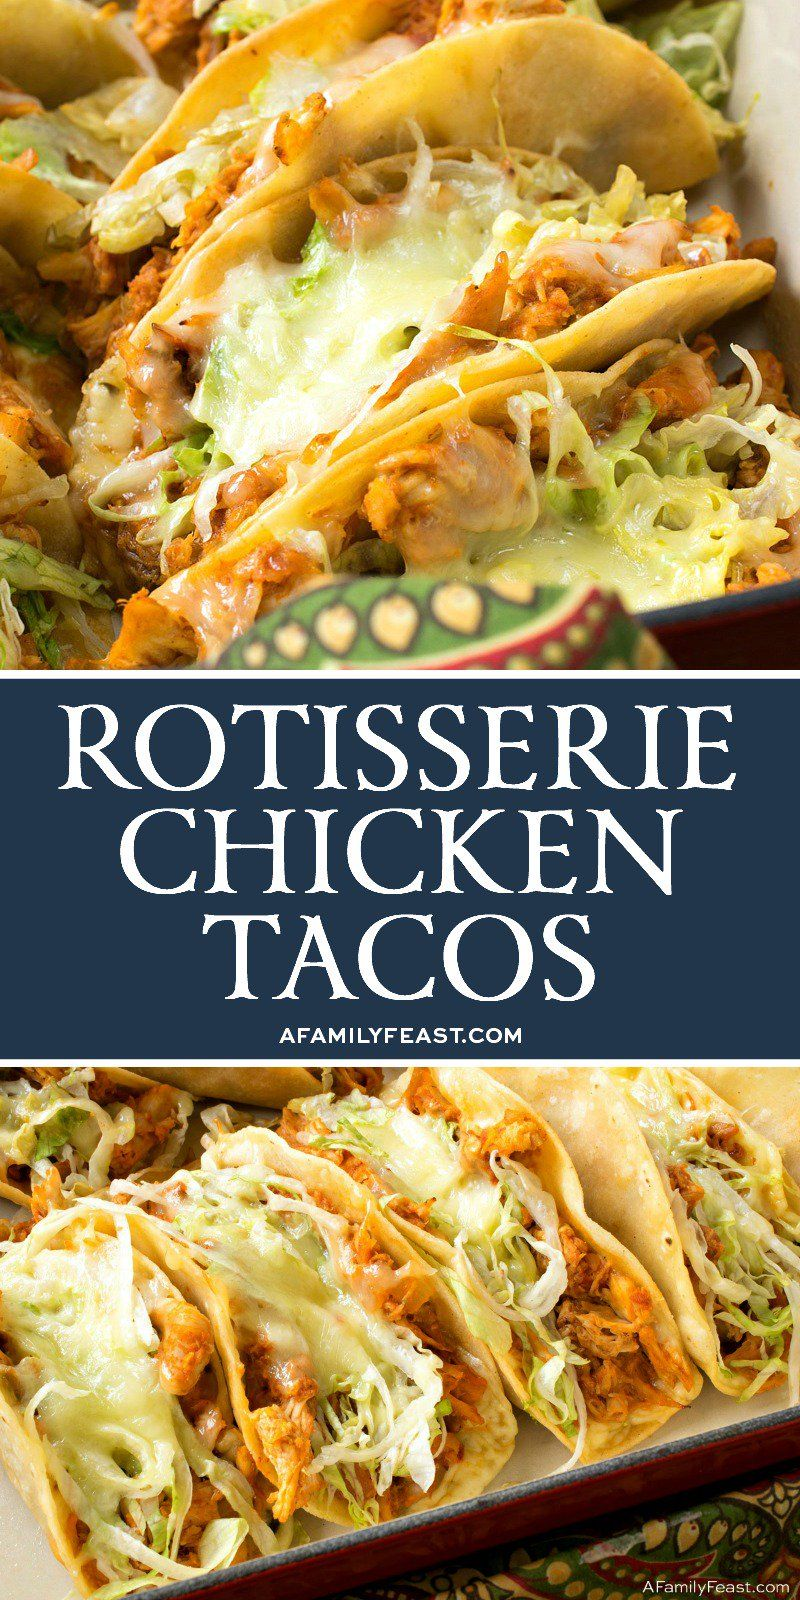 Easy Rotisserie Chicken Tacos - A Family Feast®